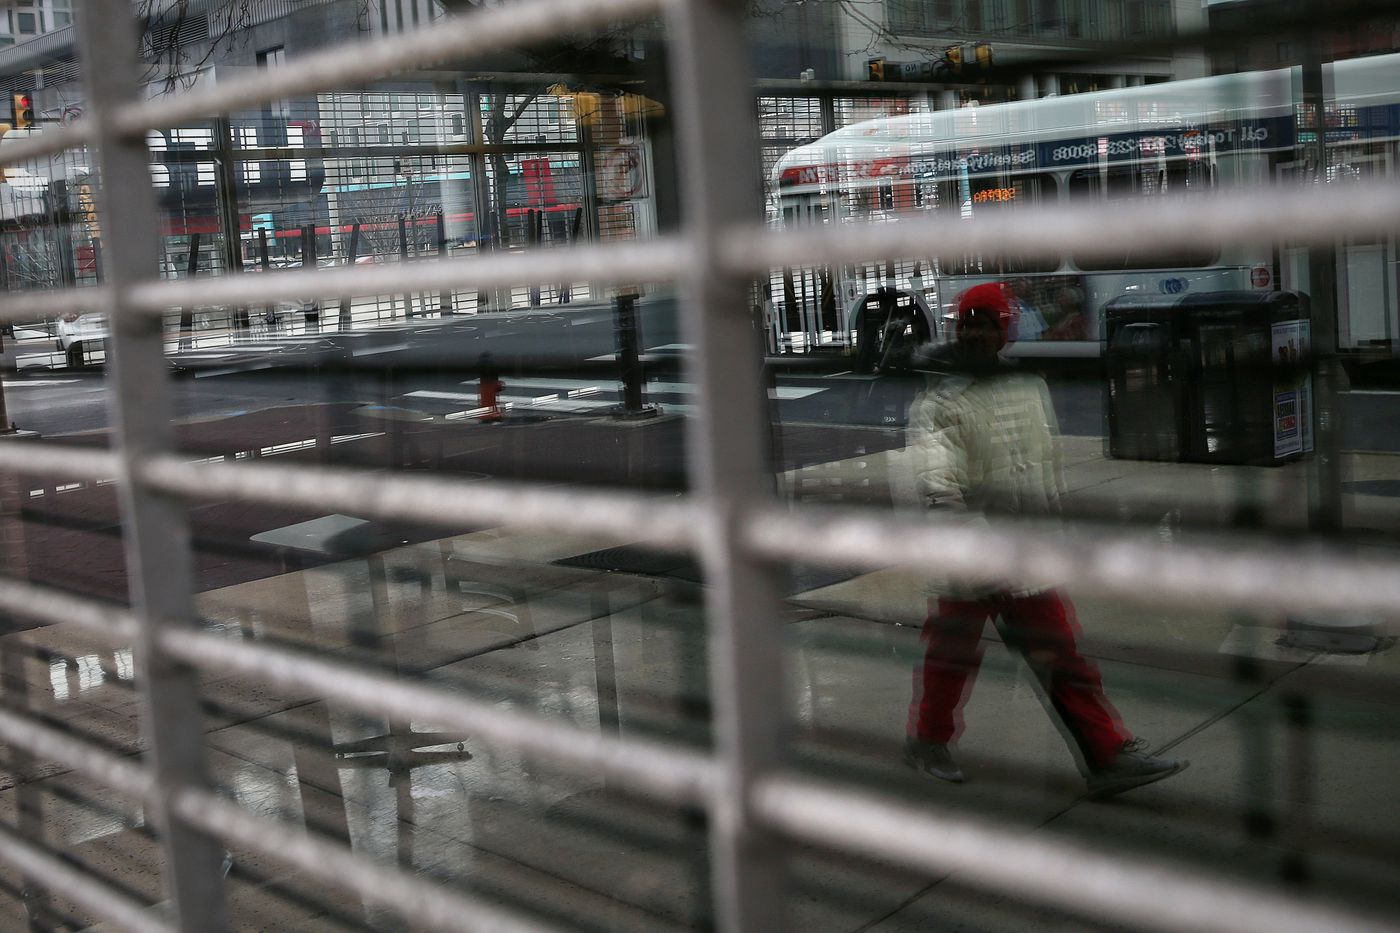 A pedestrian is reflected while walking past the shuttered Barnes and Noble on Temple University's campus in North Philadelphia on Tuesday, March 17, 2020. The university has transitioned its classes online due to the ongoing coronavirus pandemic, and nonessential retail businesses have been ordered to shut down.